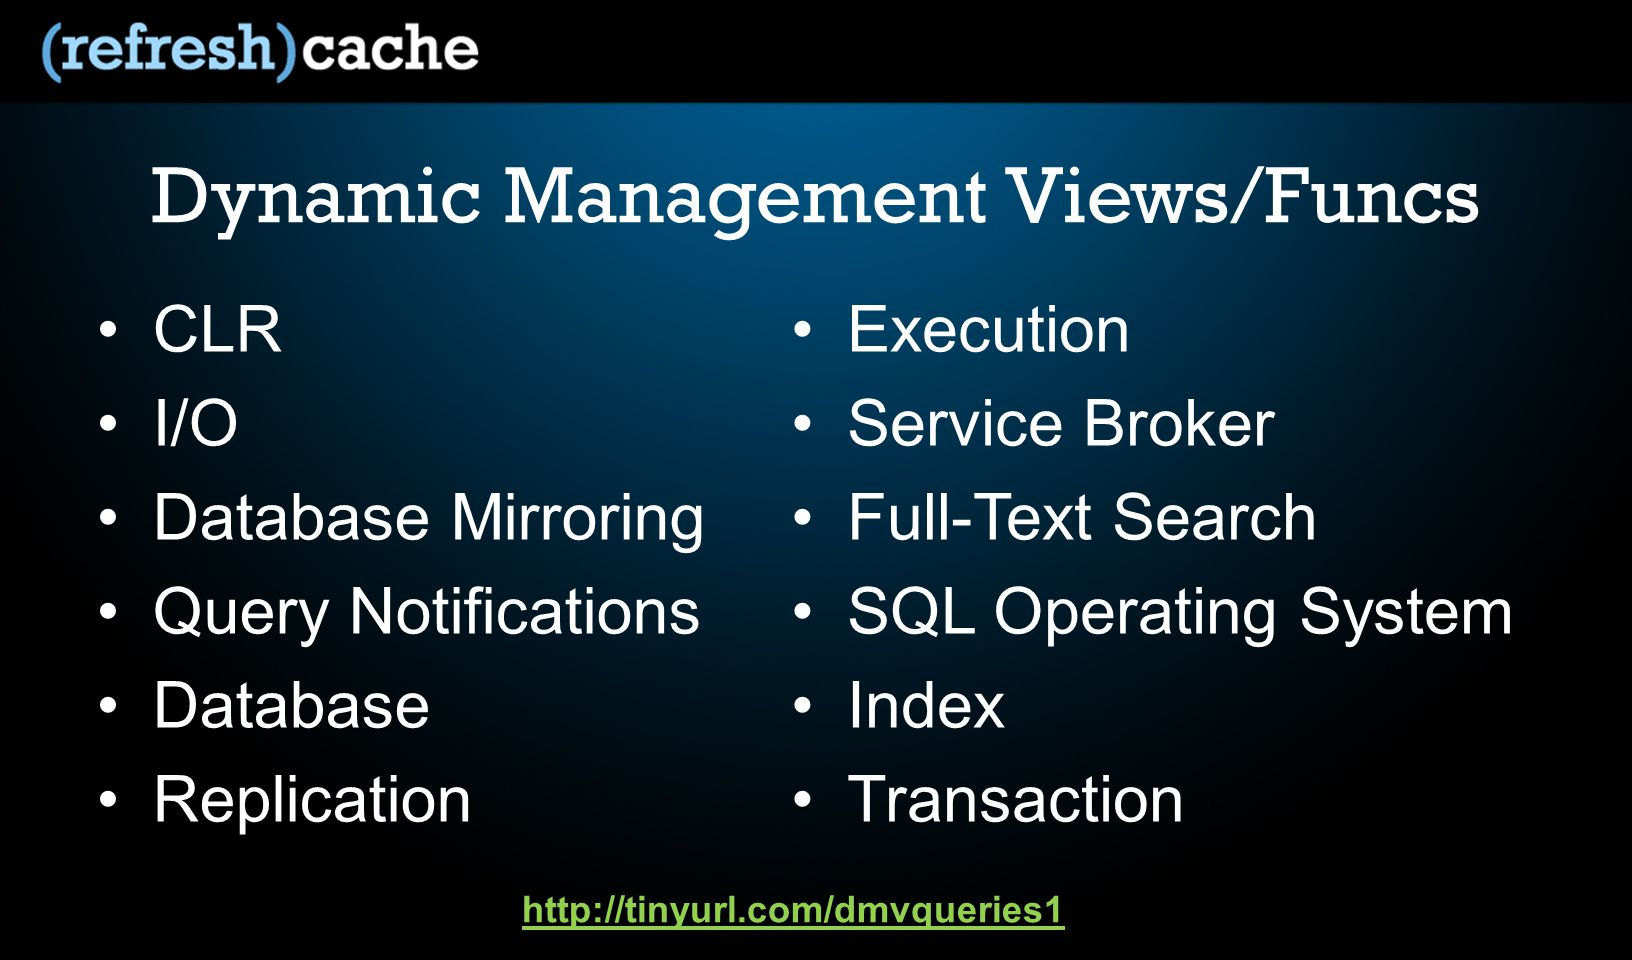 Dynamic Management Views/Funcs CLR I/O Database Mirroring Query Notifications Database Replication Execution Service Broker Full-Text Search SQL Operating System Index Transaction http://tinyurl.com/dmvqueries1